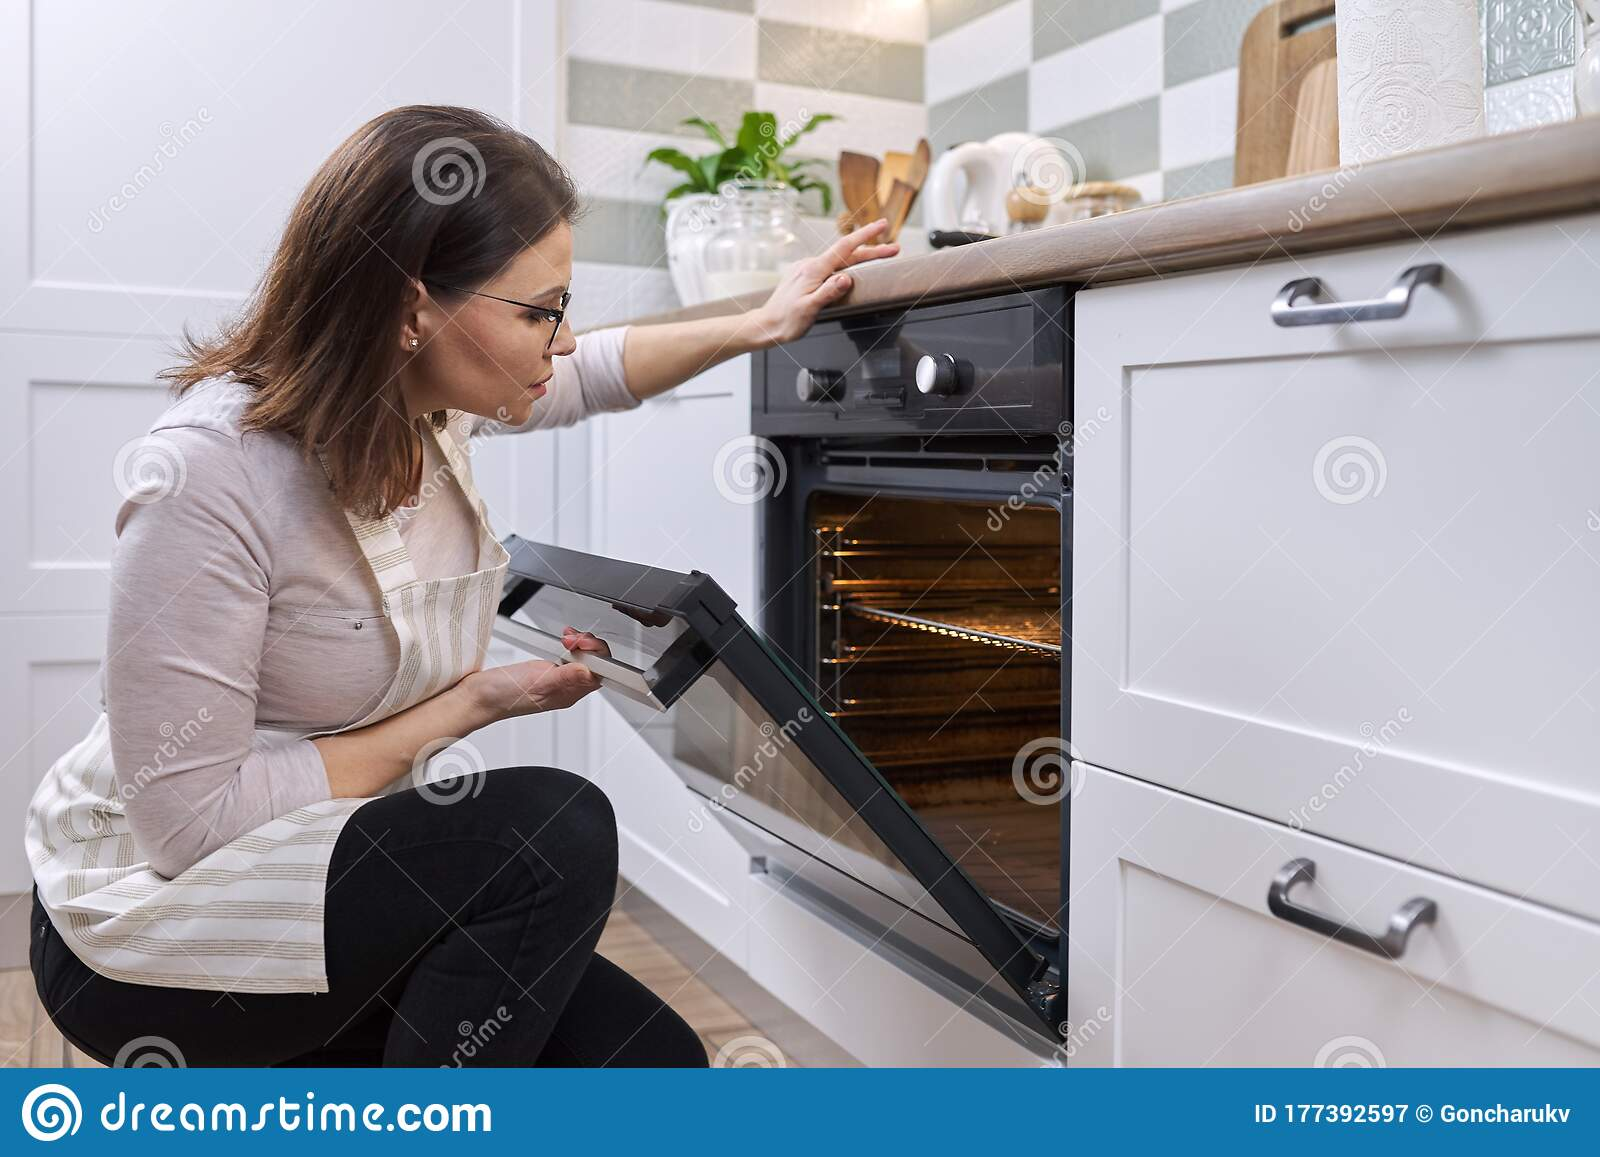 Housewife With Repairman Near Modern Oven Stock Photo